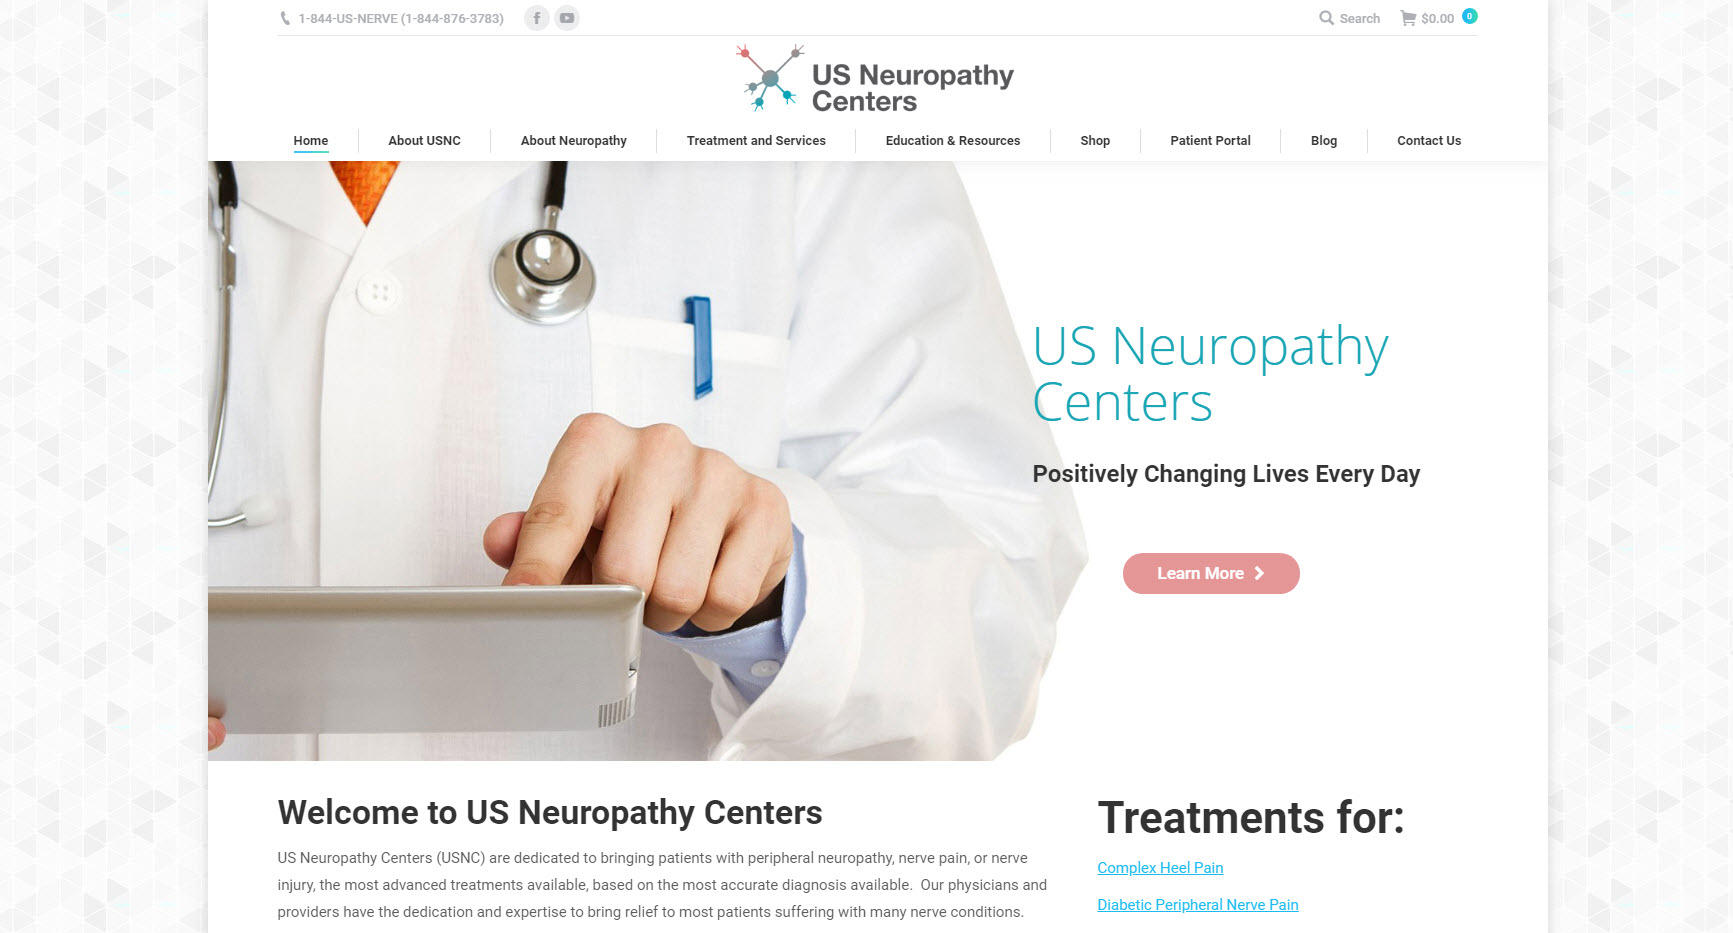 US Neuropathy Centers